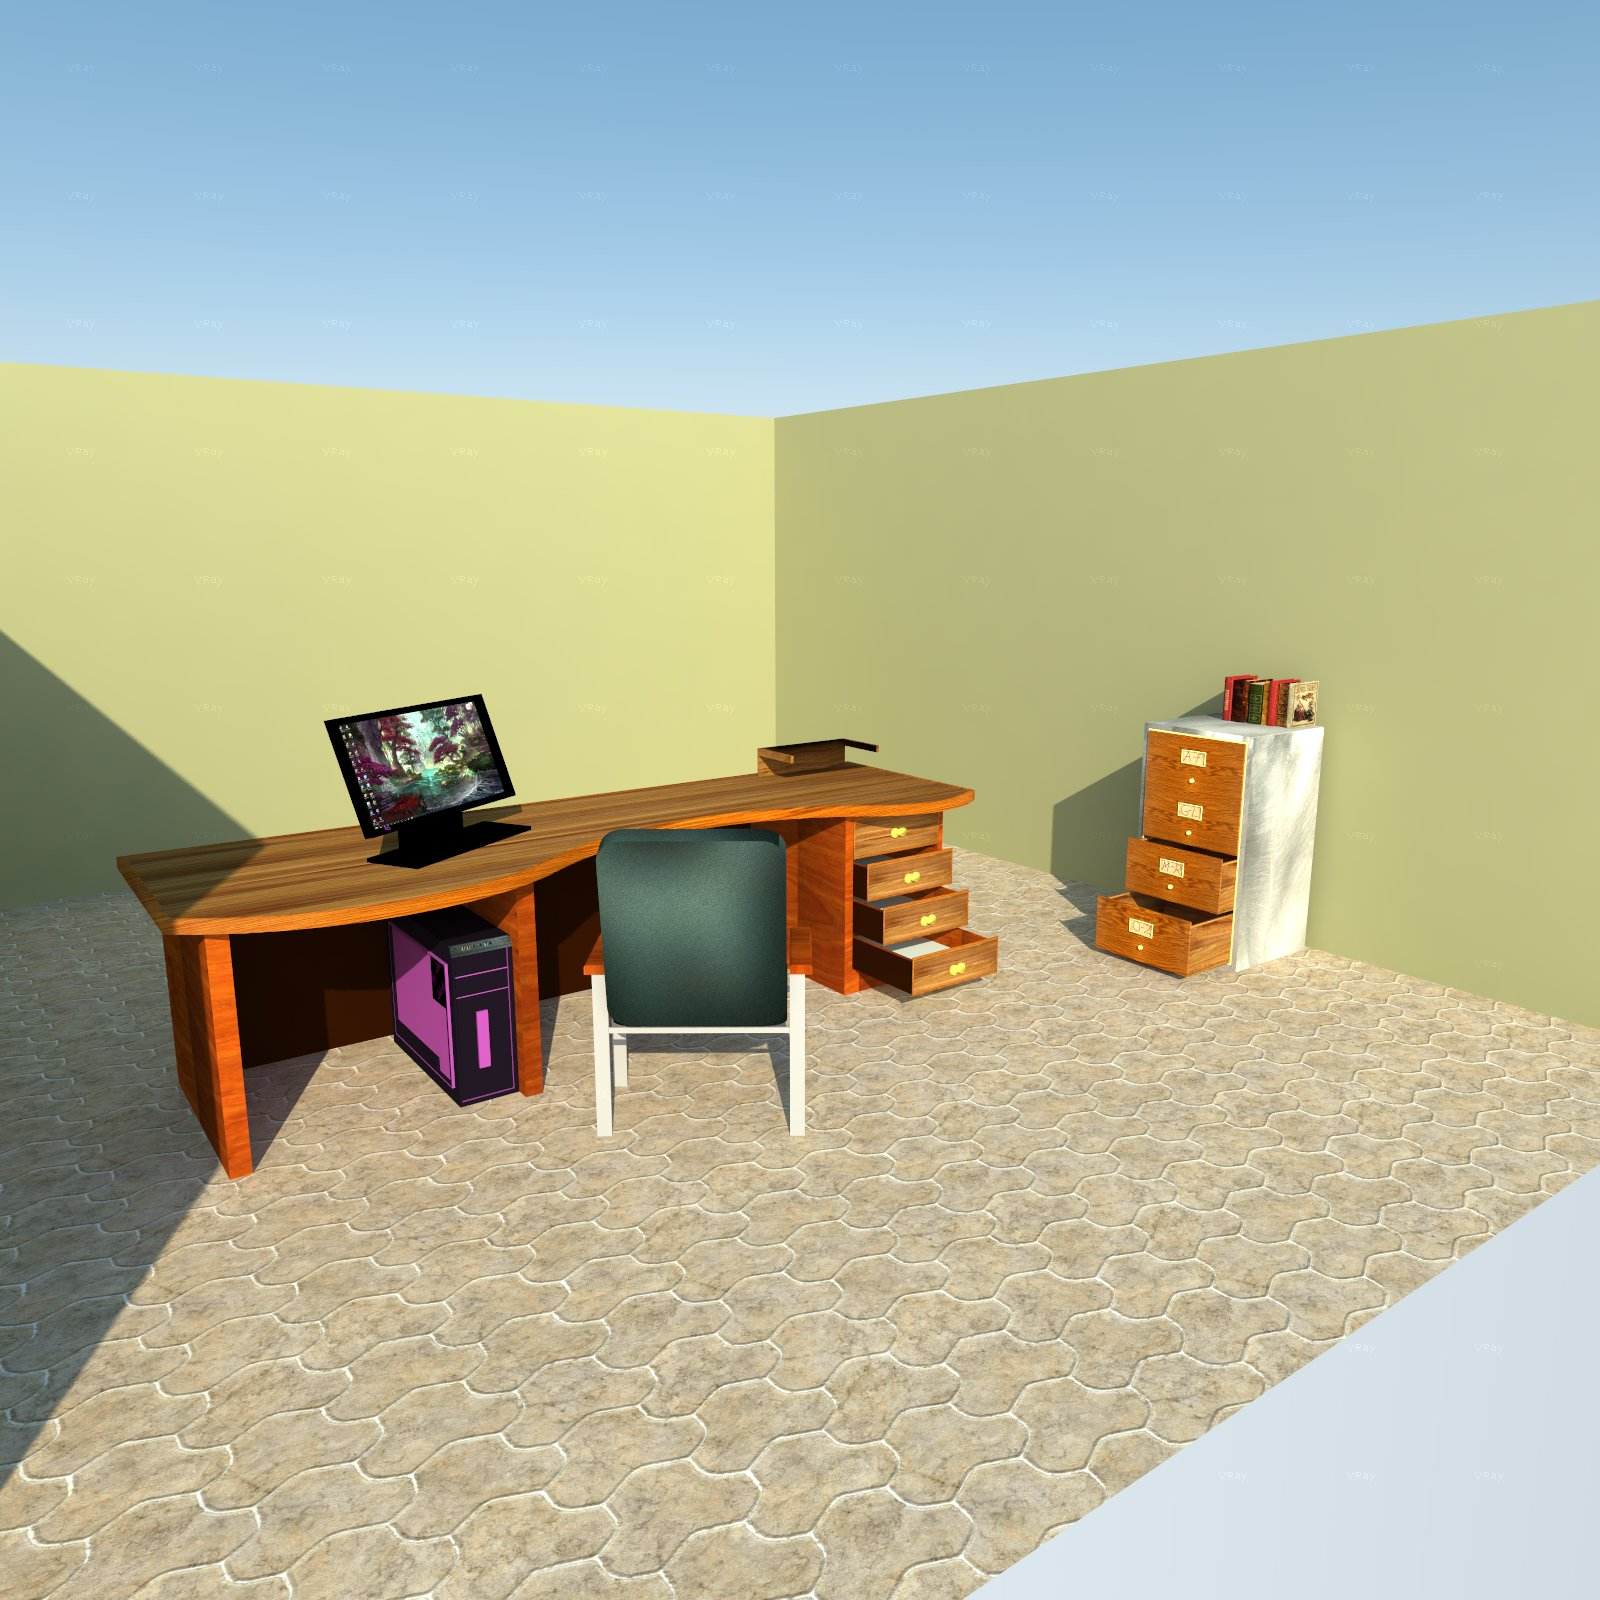 Office Furniture Pack A by holydragon78